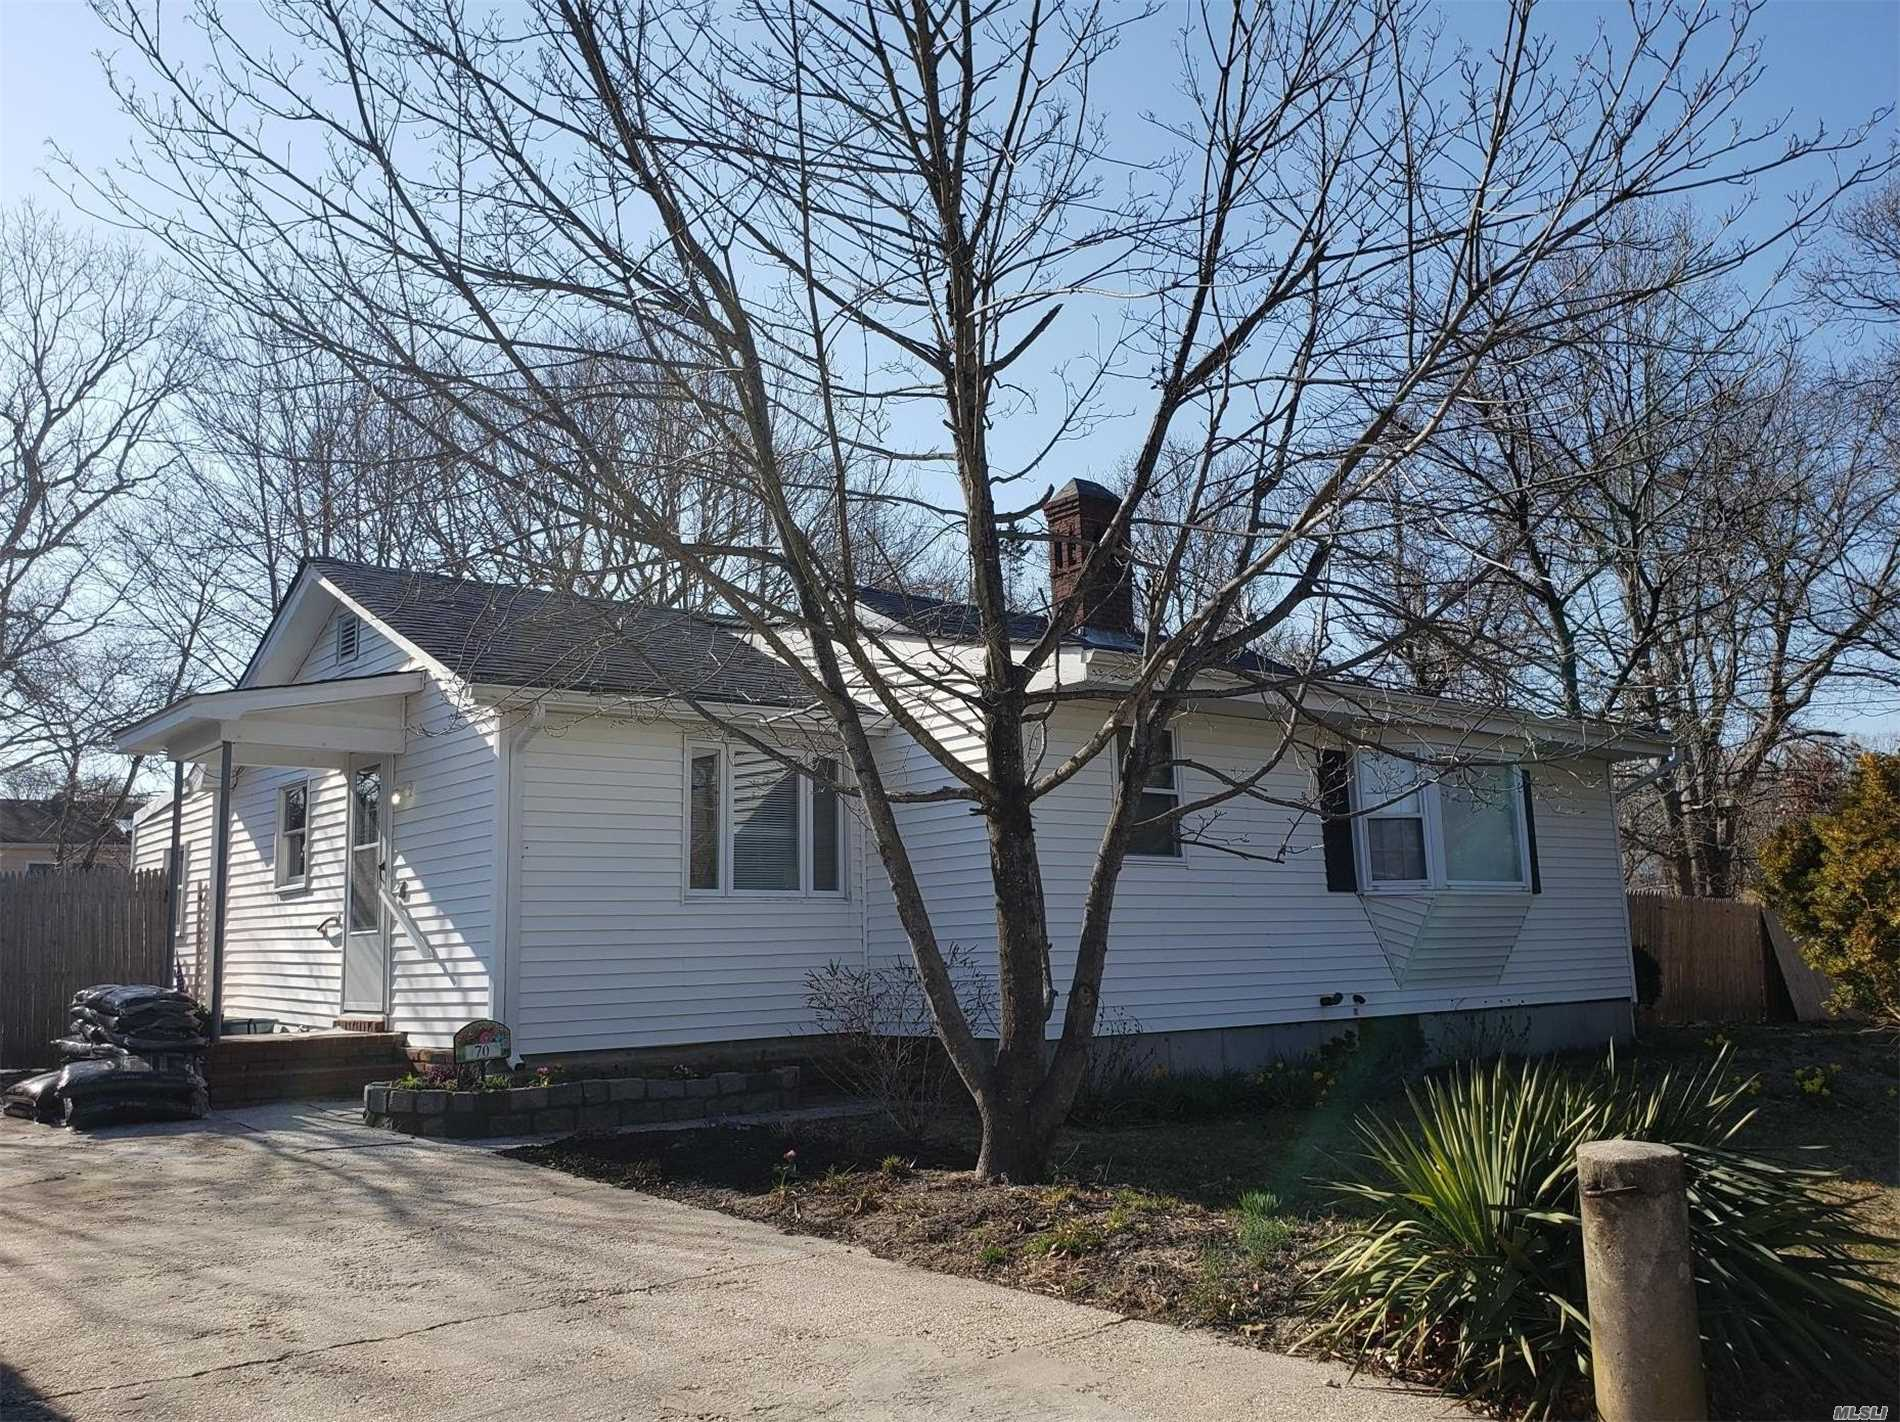 DEAL DIED ! LOW TAXES ! COMMUTERS DREAM ! This 3 bedroom Ranch Home is Located on 180x100 lot w/ Fenced in Yard . Features include a Spacious eat in kitchen w/ Oak Cabinets , NEW Dishwasher, Wall Oven & Sky Light Offering Lots of Natural Light; 2 NEW Full Bathrooms w/ Waterproof Wood Flooring & Ceramic Tile Shower including a custom Glass Tile Design, Wide Shower Base & Sky Light. Sizable Living Room w/ Hand Laid Stone Fireplace & Uniquely Designed Chimney, Hardwood Flooring, Laundry Room !